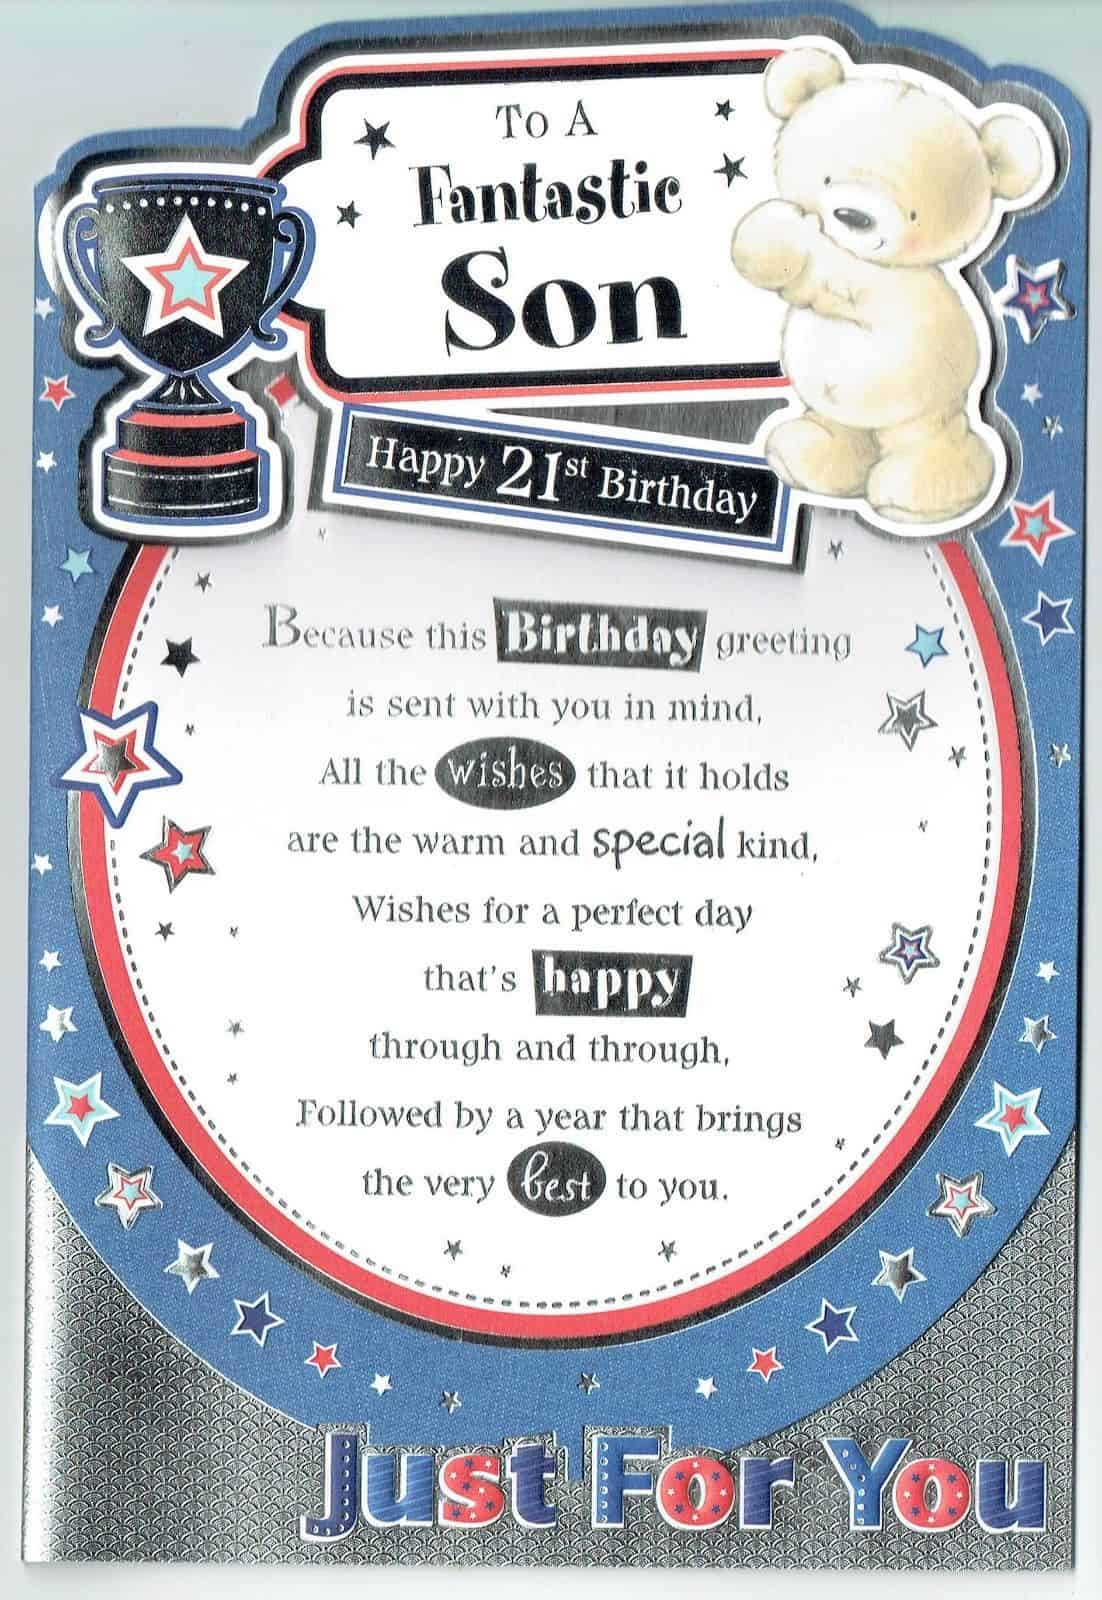 Surprising Son 21St Birthday Card To A Fantastic Son With Sentiment Verse Personalised Birthday Cards Paralily Jamesorg